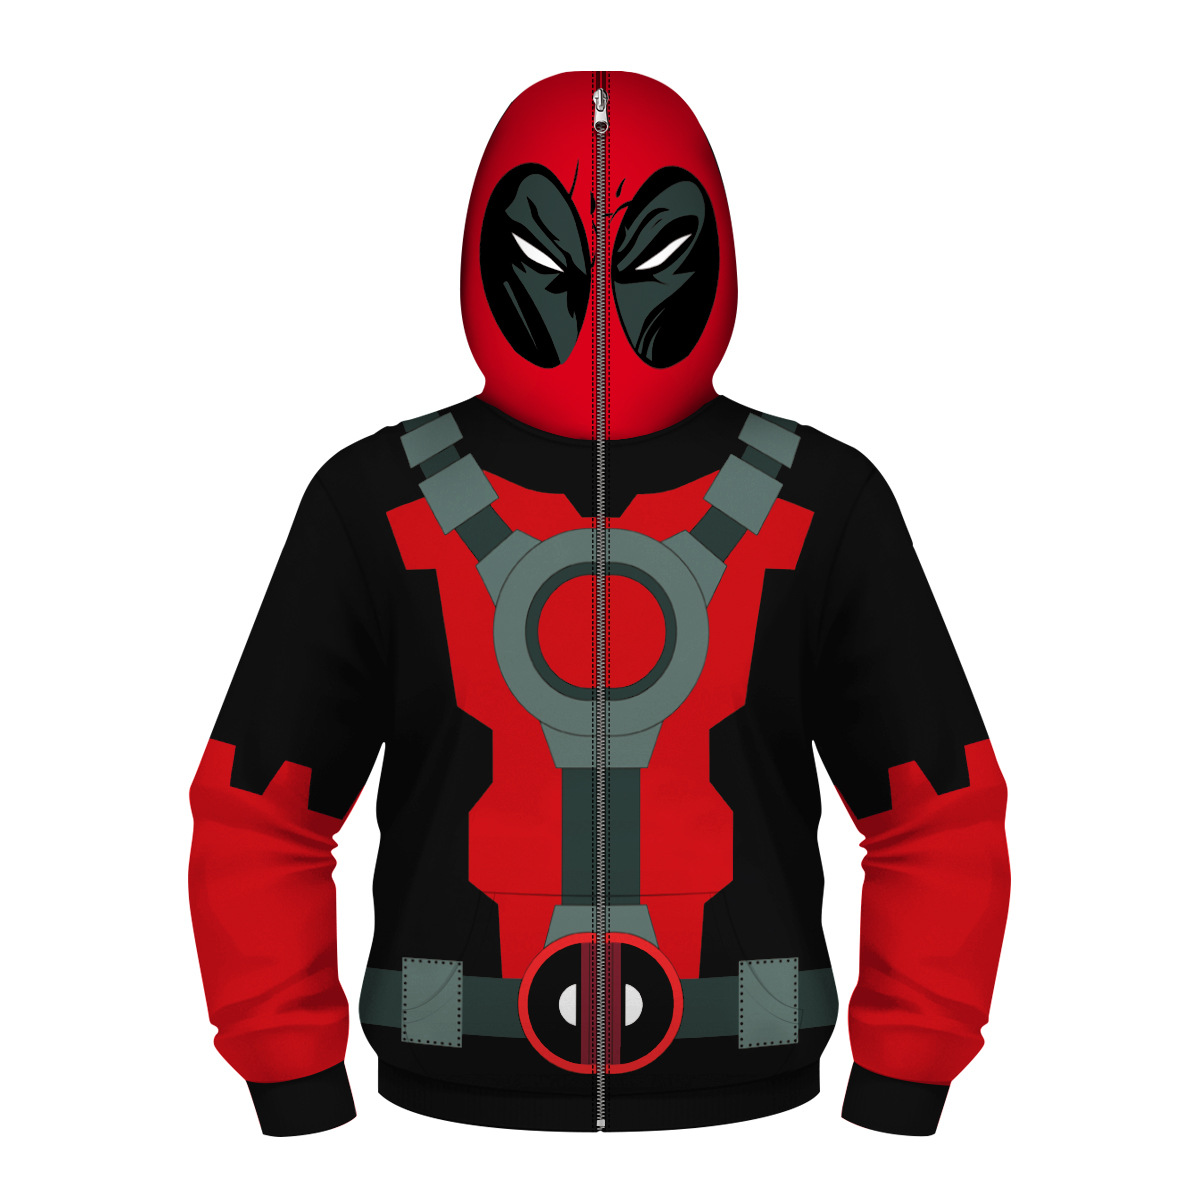 Superhero Spider-man The Avengers 3 Kid Hoodies 3d Print Hoodies Streetwear Casual Cospaly Jacket Zipper Coat Outfit